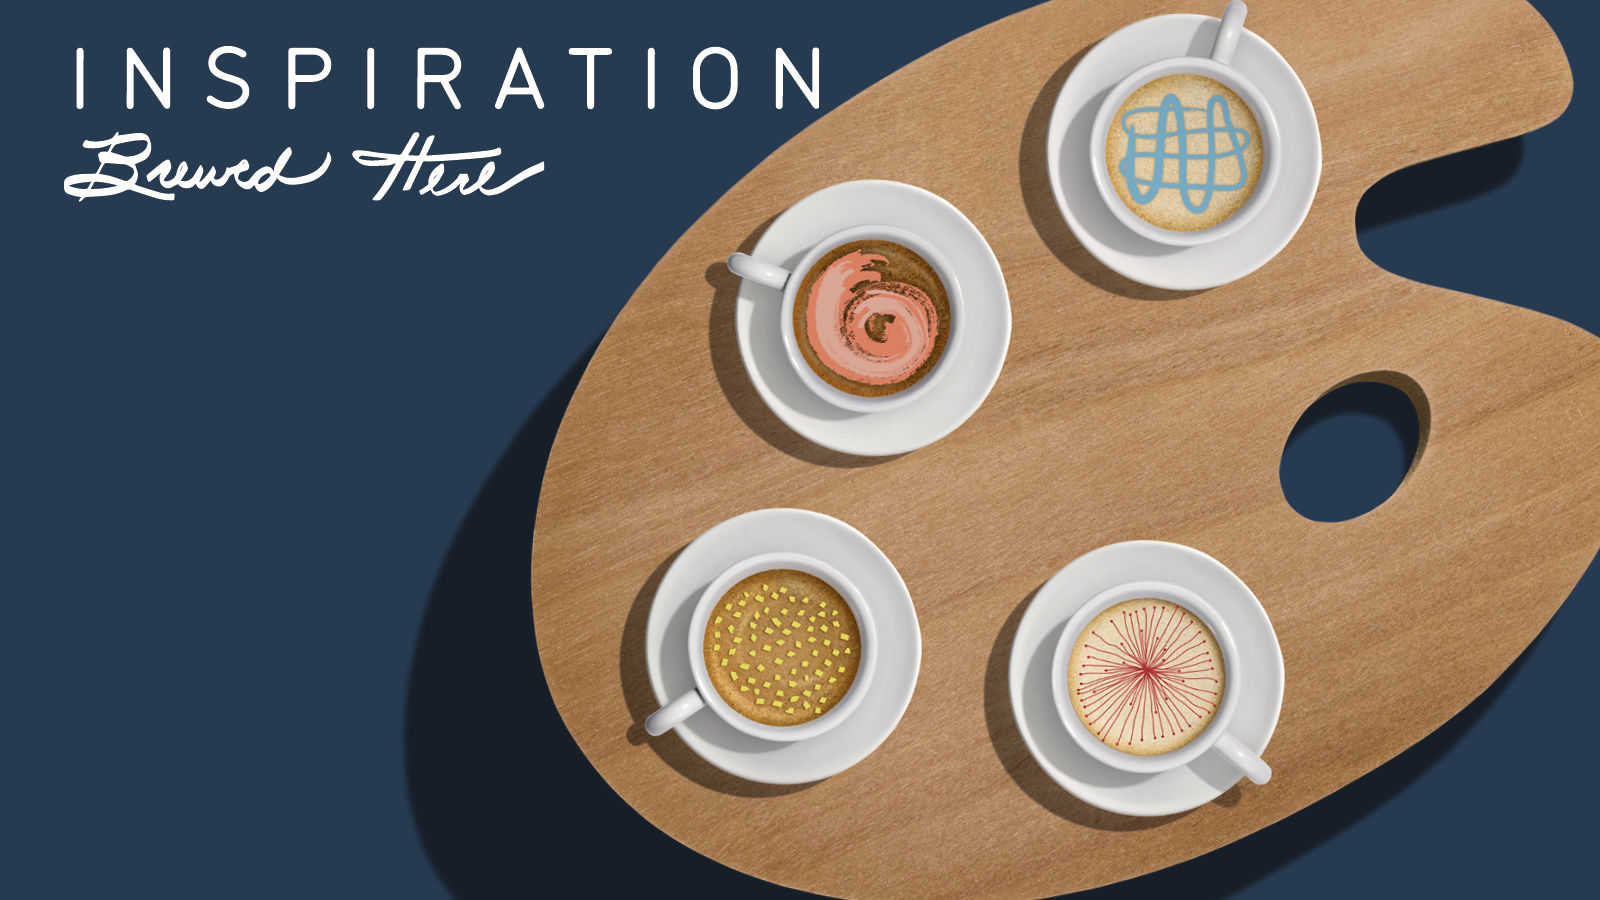 Inspiration Brewed here | Latte art and coffee culture